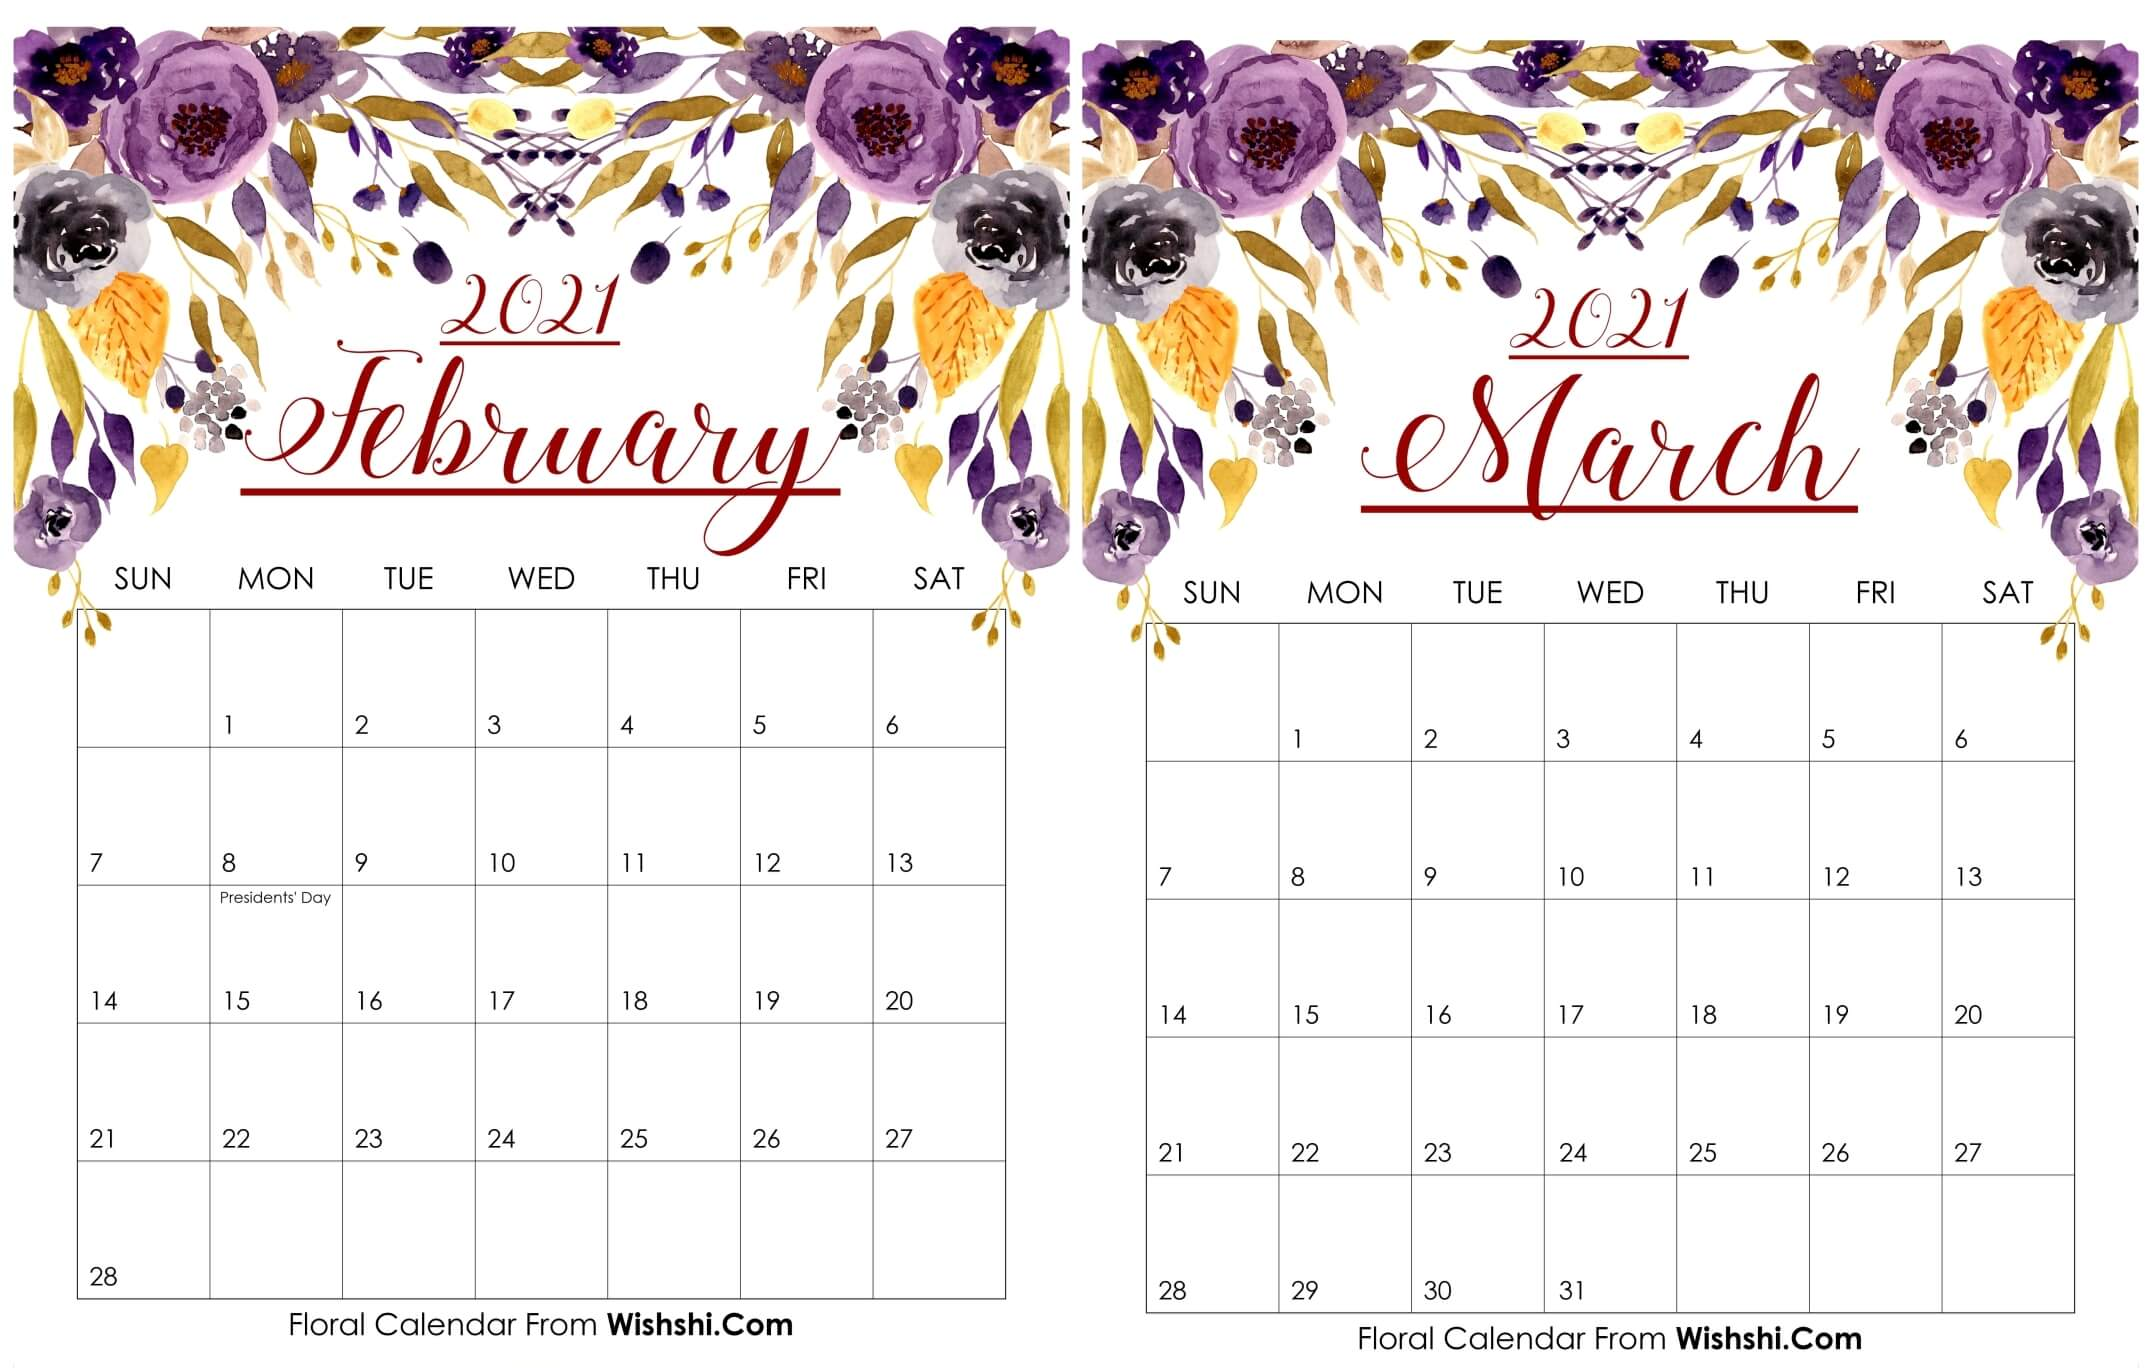 Floral February March 2021 Calendar